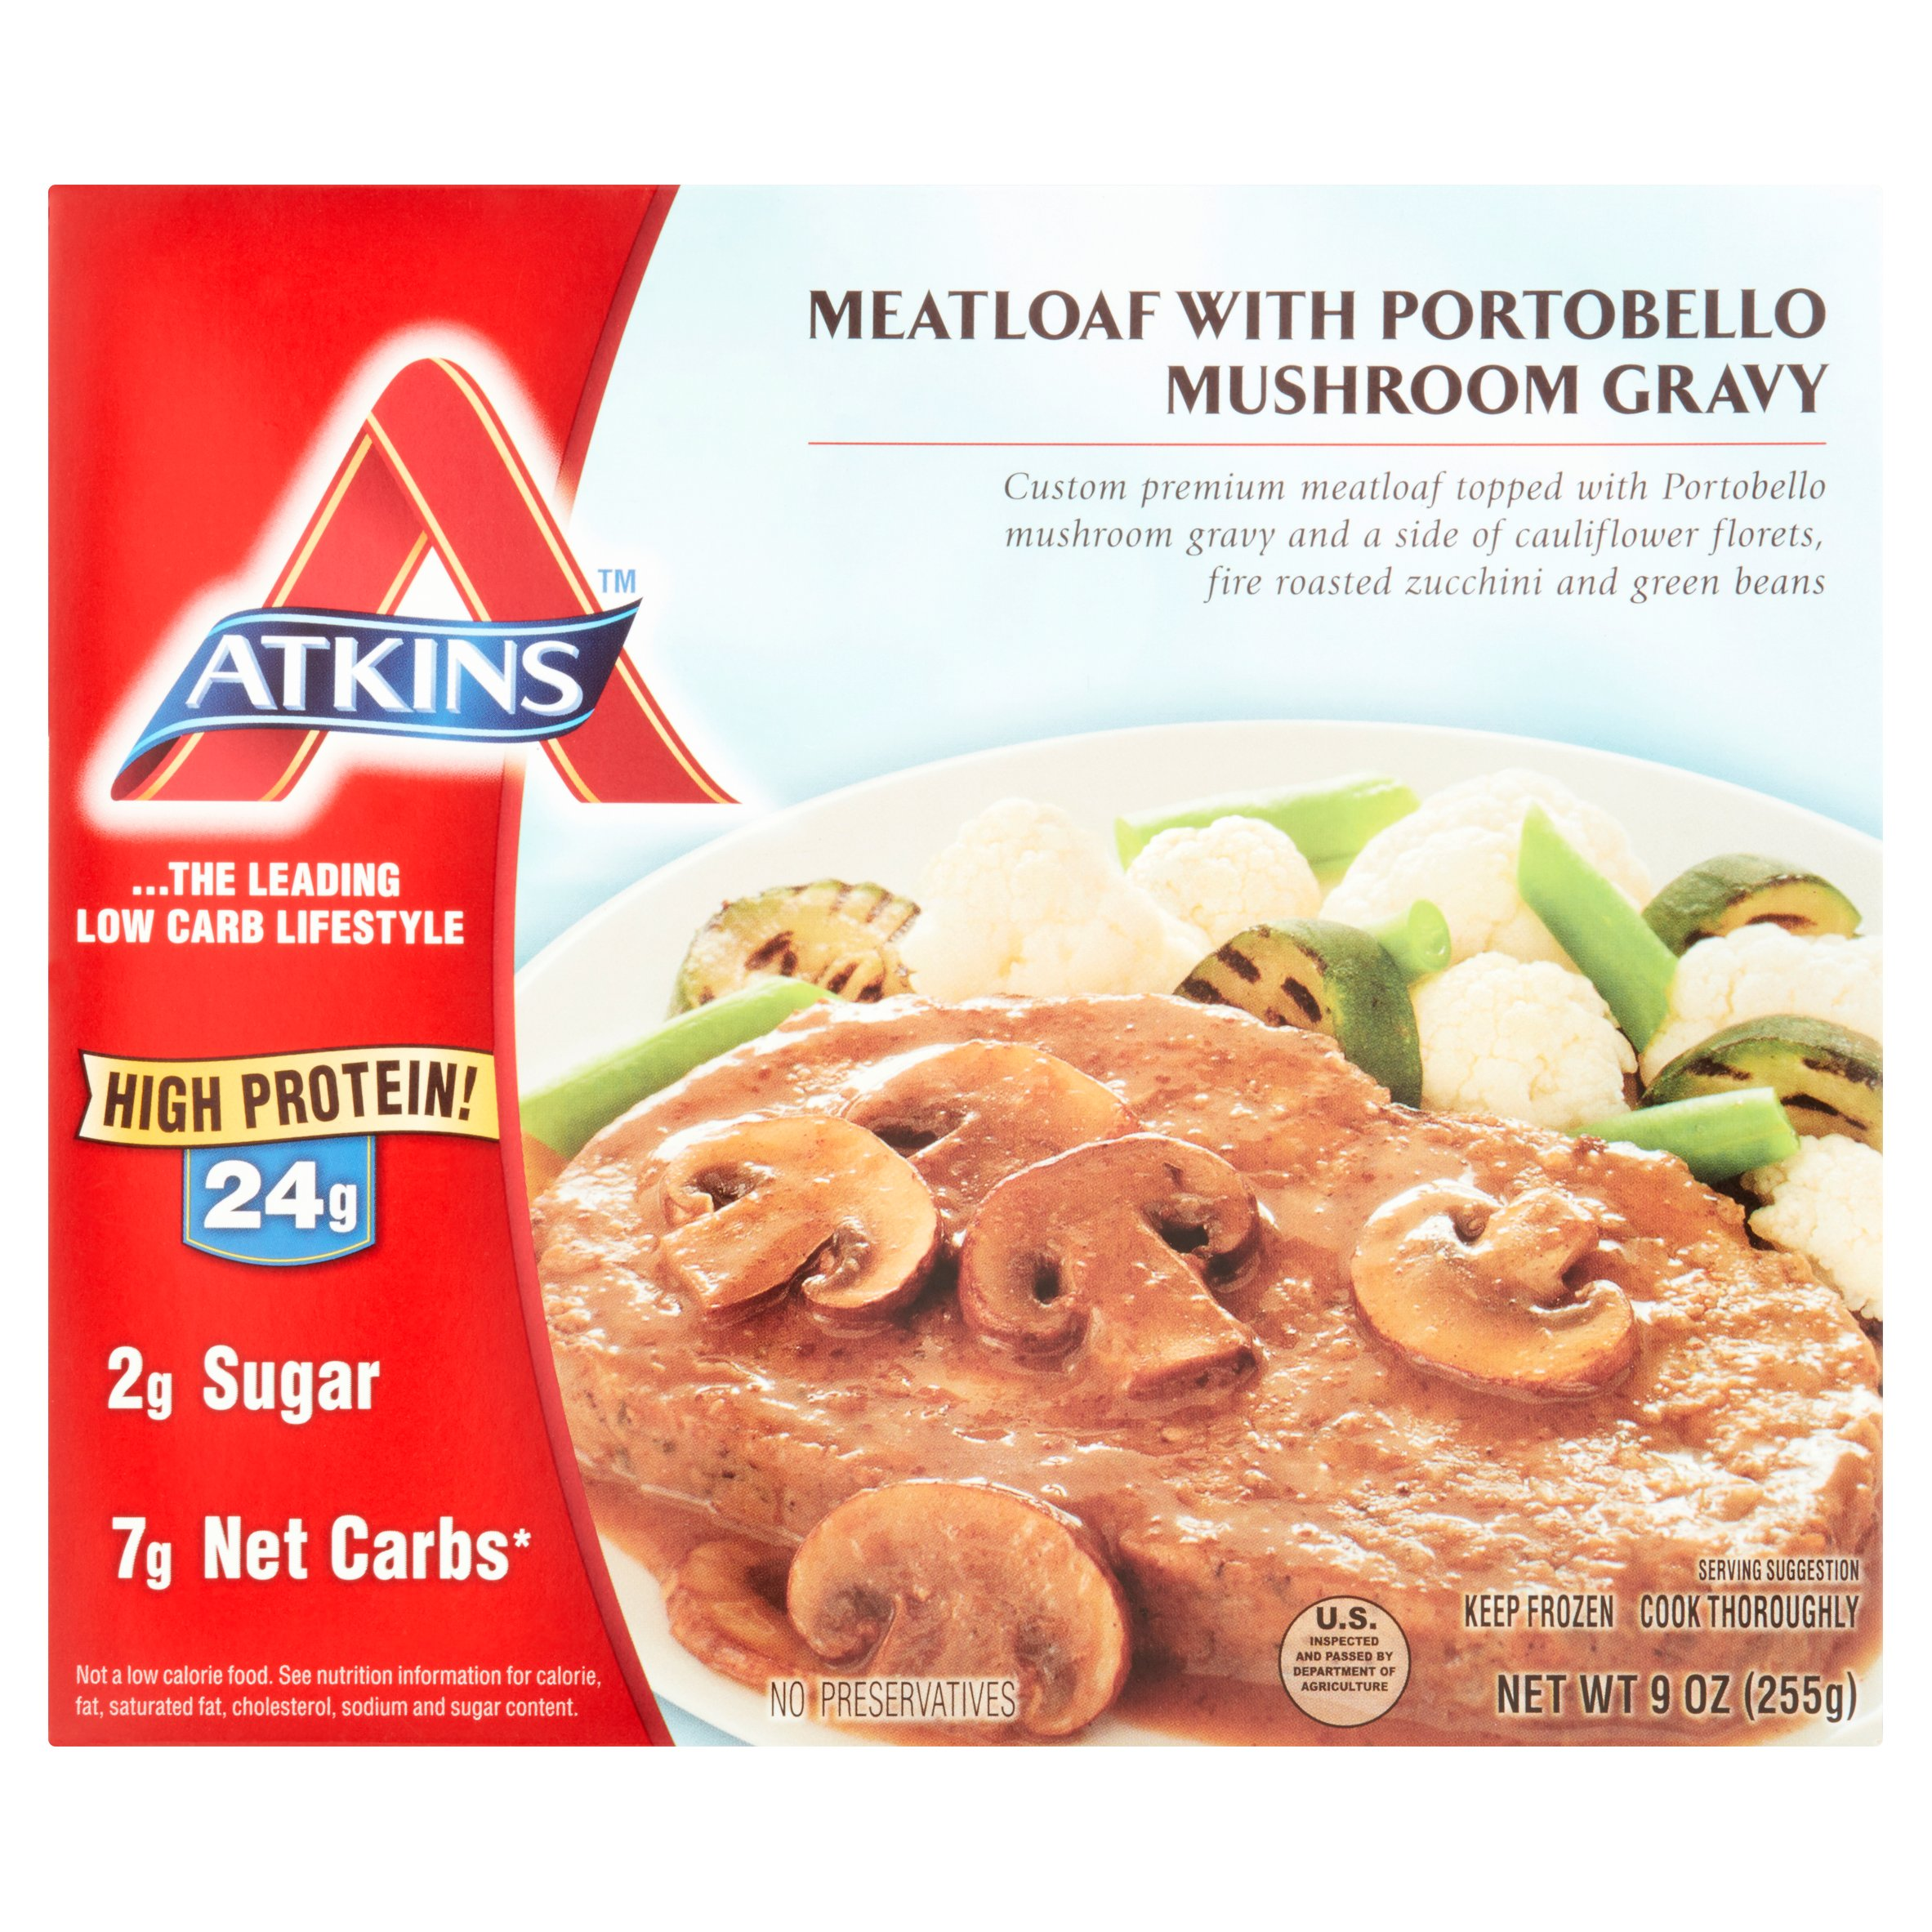 Atkins Meatloaf with Portobello Mushroom Gravy, 9 oz